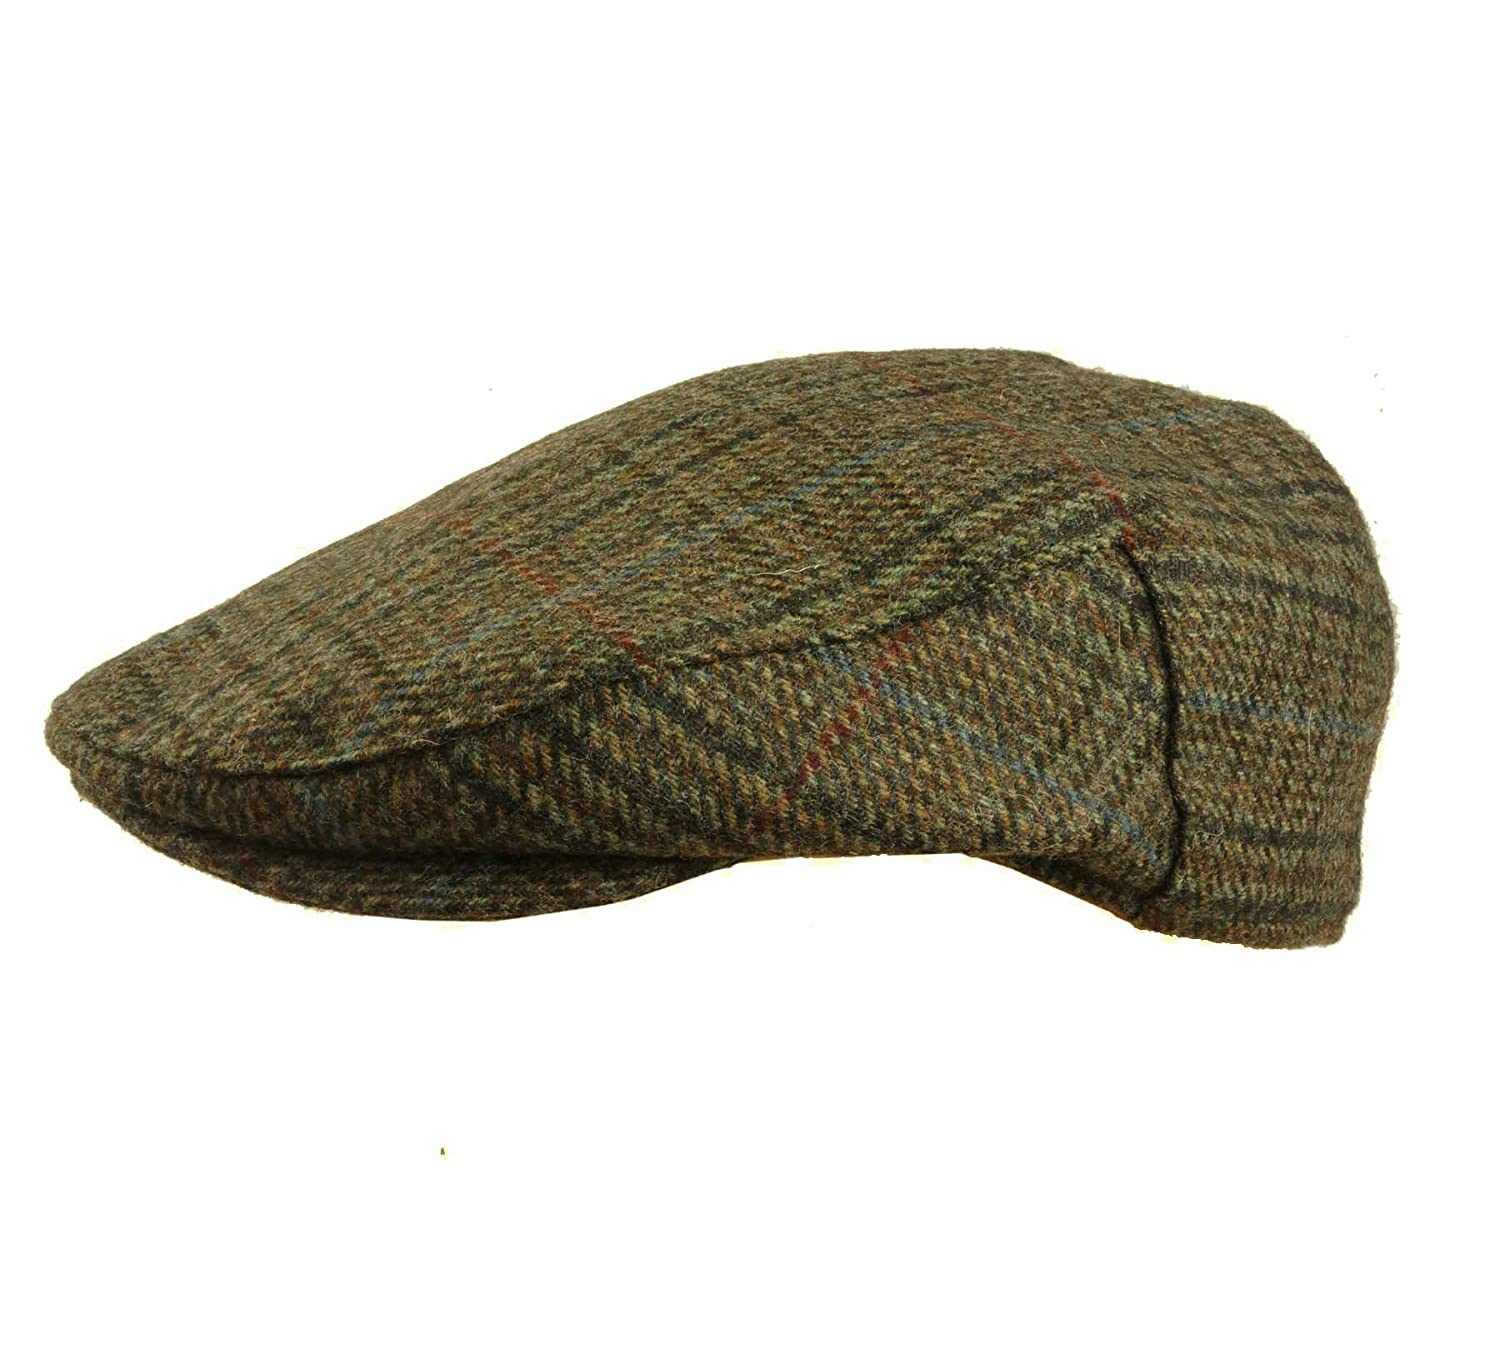 849f9b6667e Quality English Tweed Cap Earland Brothers Hats 100% Wool Moon Fabrics Made  by Failsworth 5 Tweeds  Amazon.co.uk  Clothing